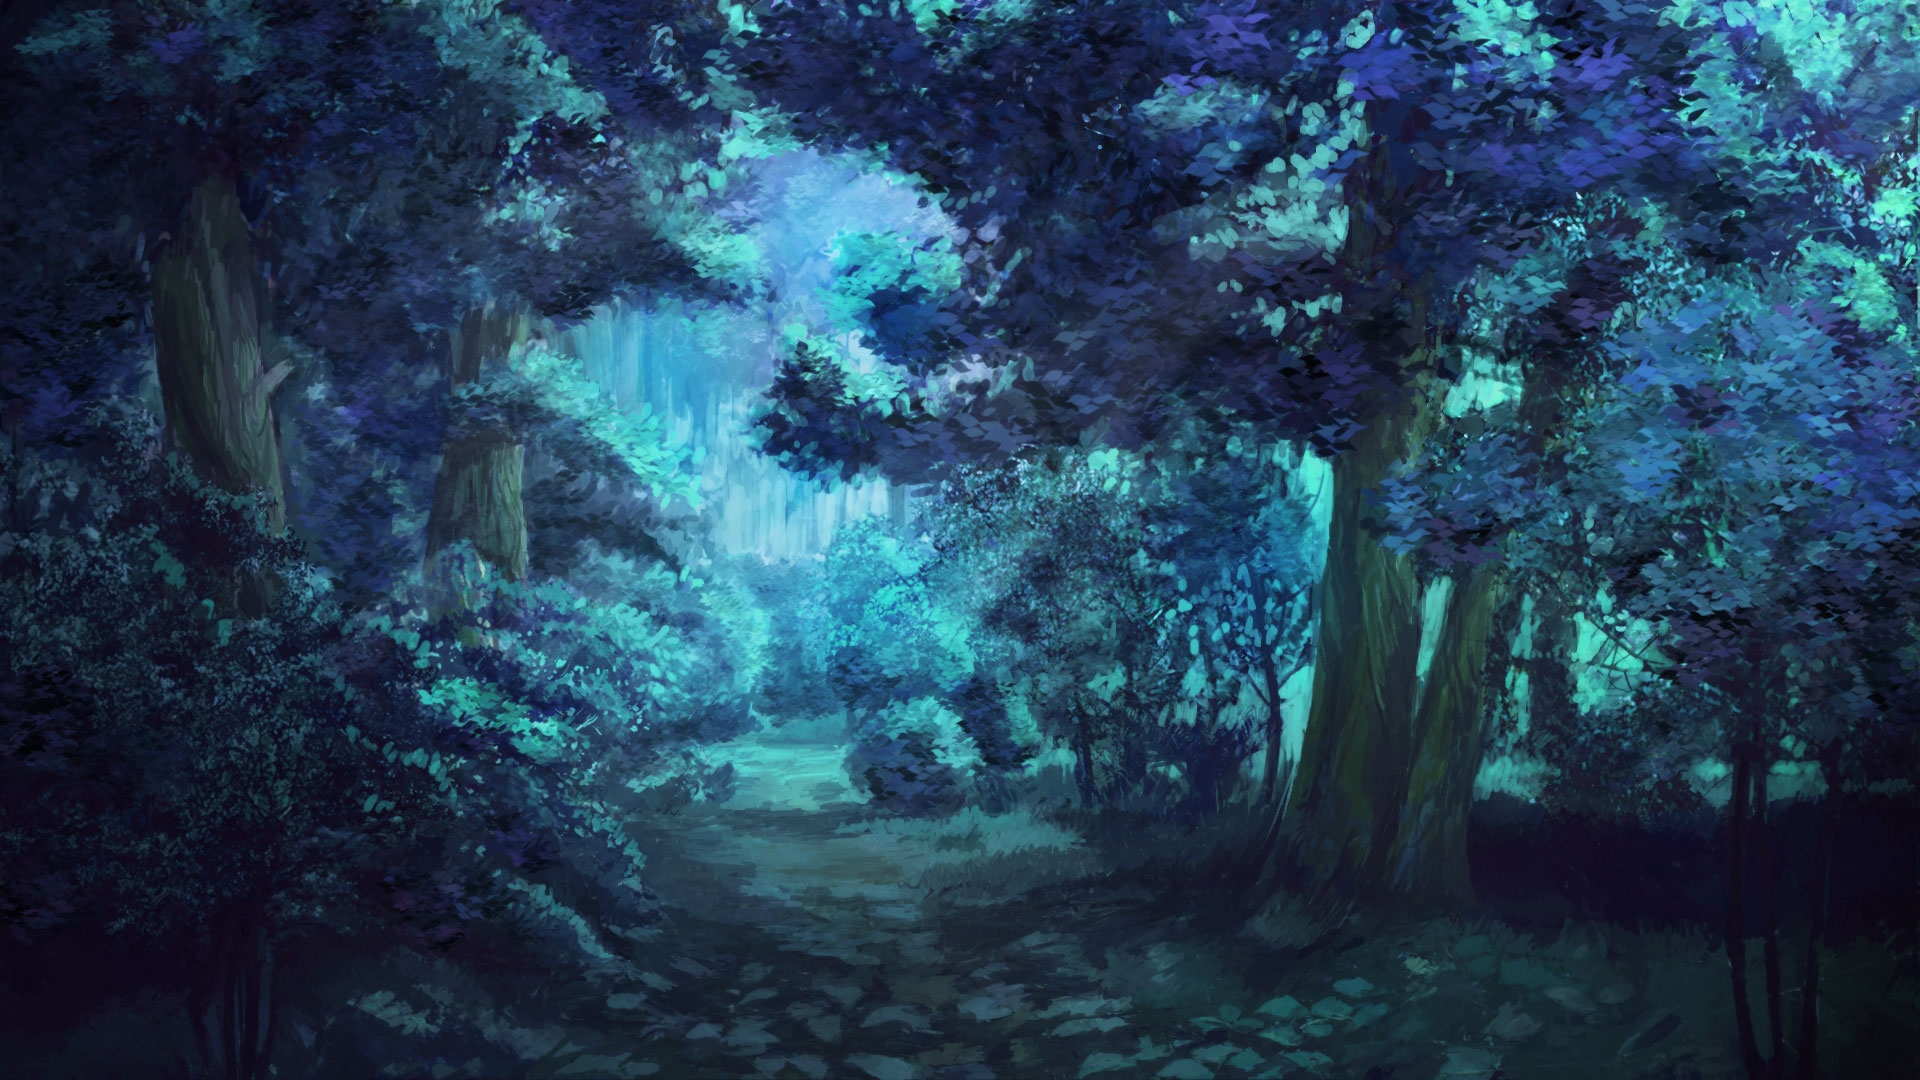 Anime Forest wallpaper picture hd